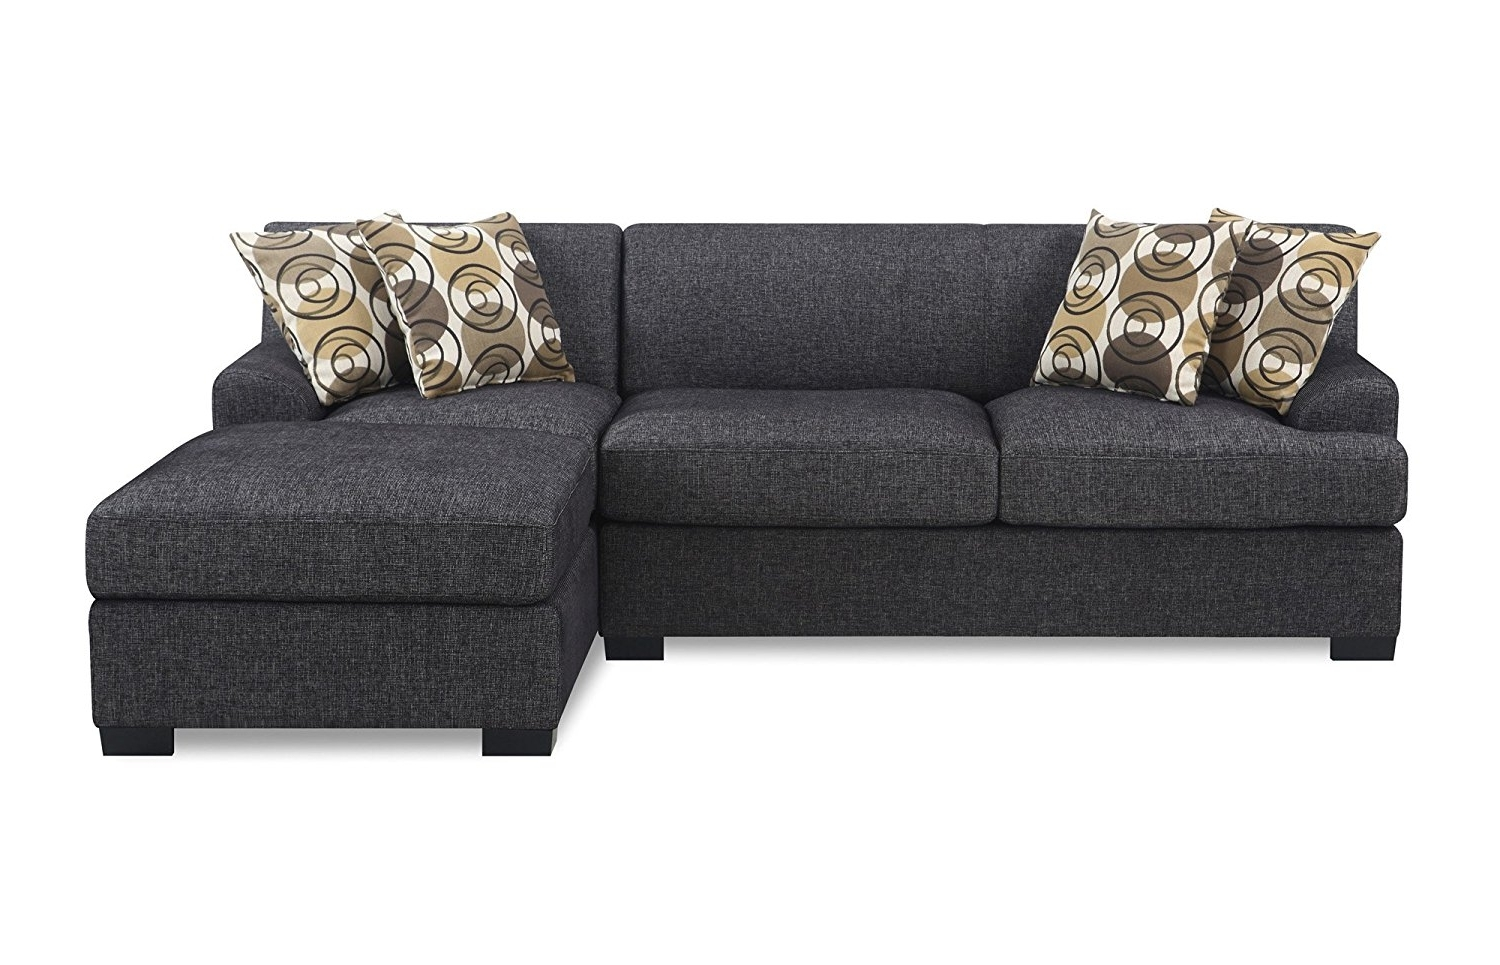 Loveseats With Chaise Throughout Most Current Amazon: Bobkona Benford 2 Piece Chaise Loveseat Sectional Sofa (View 7 of 15)